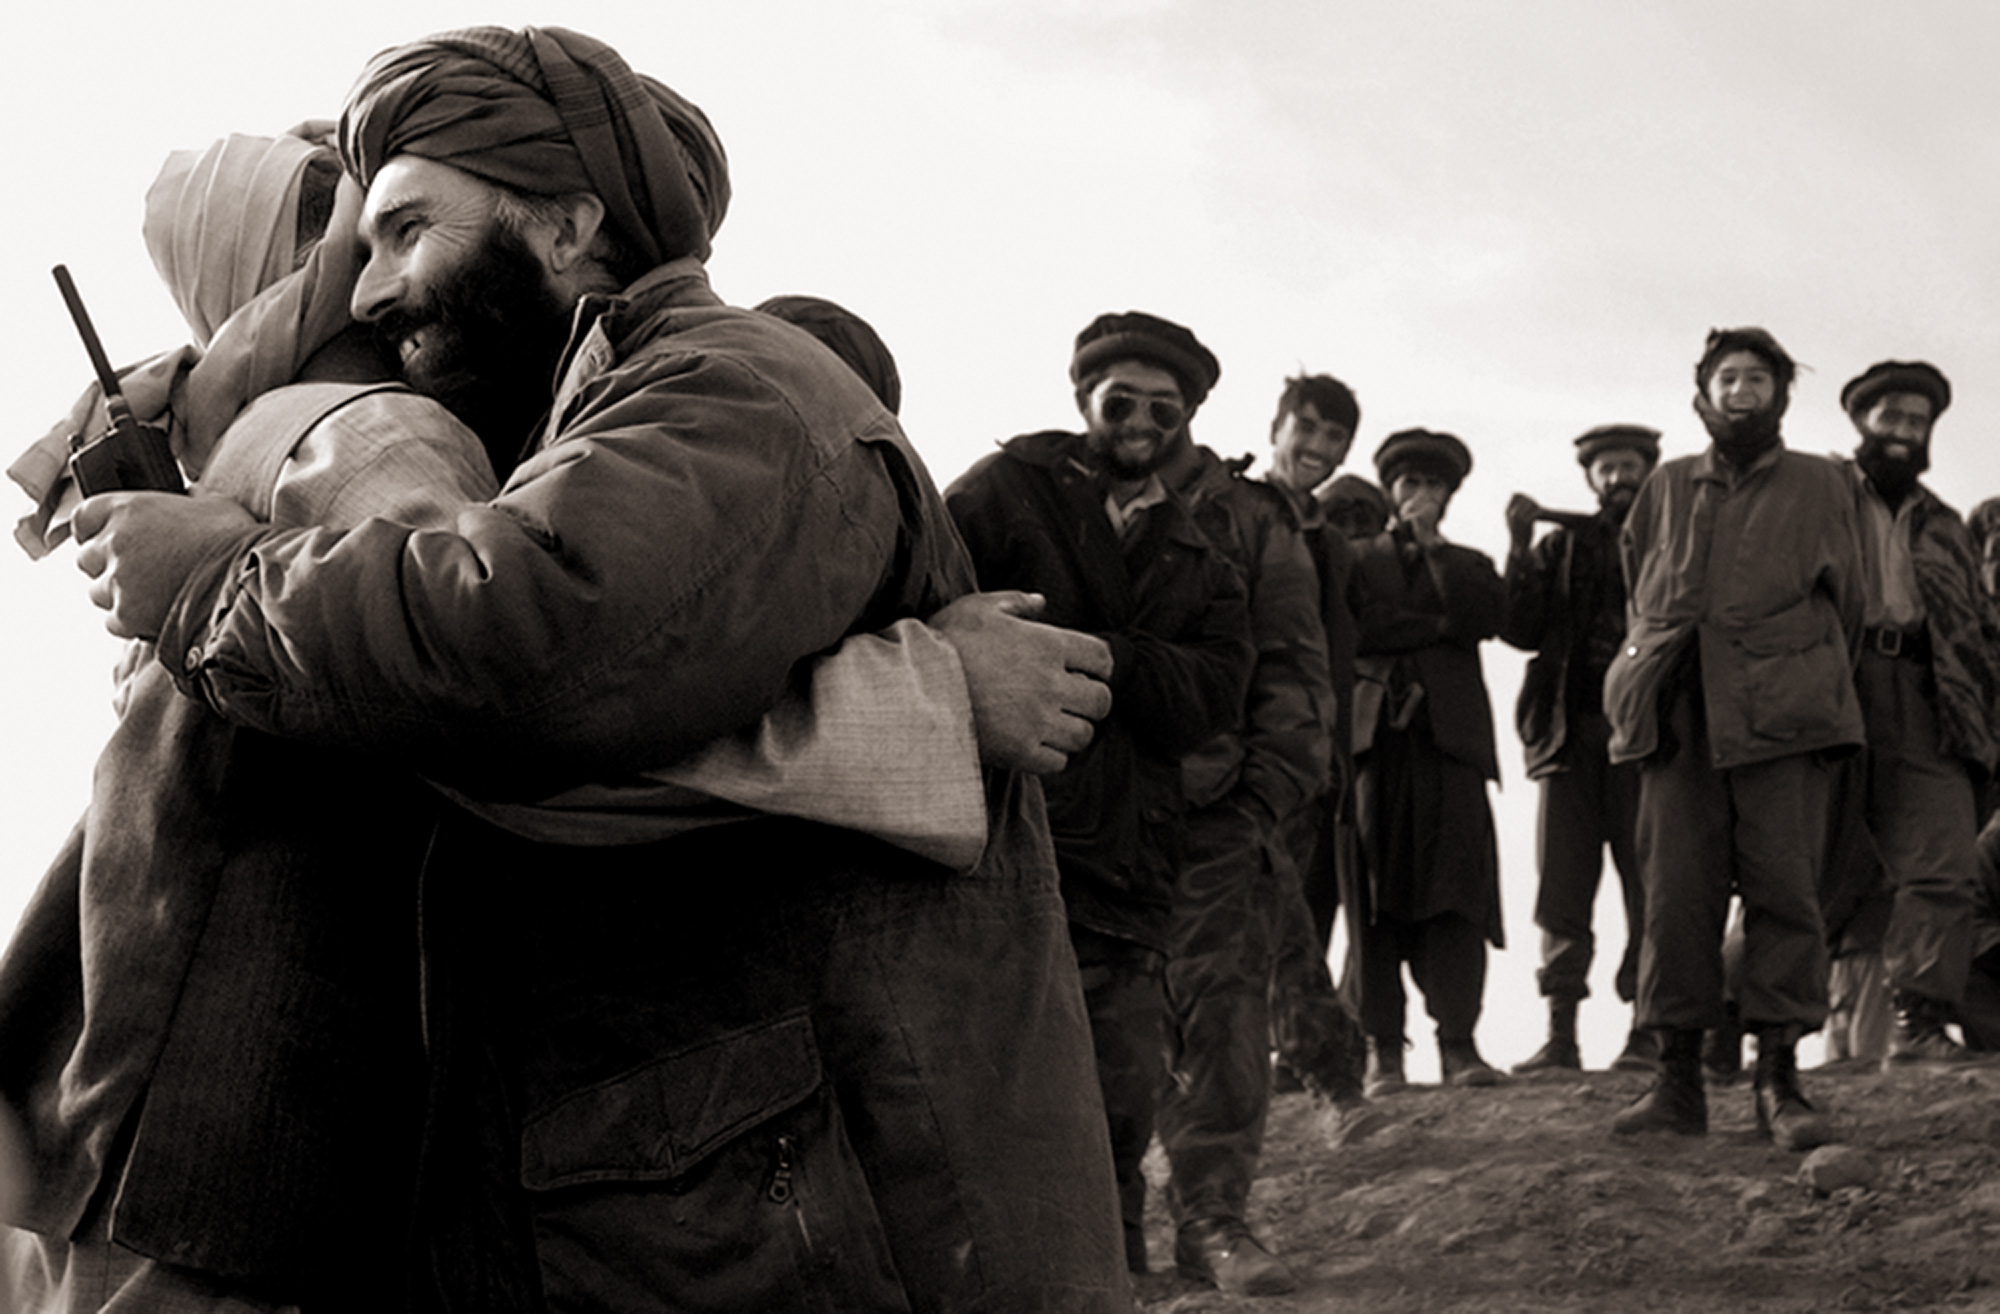 Northern Alliance and Taliban commanders greet each other as old friends after a tense surrender of some 500 Taliban soldiers on the Konduz front lines. Negotiations with the Taliban allowed them to keep their vehicles and arms, as long as they surrendered peacefully.